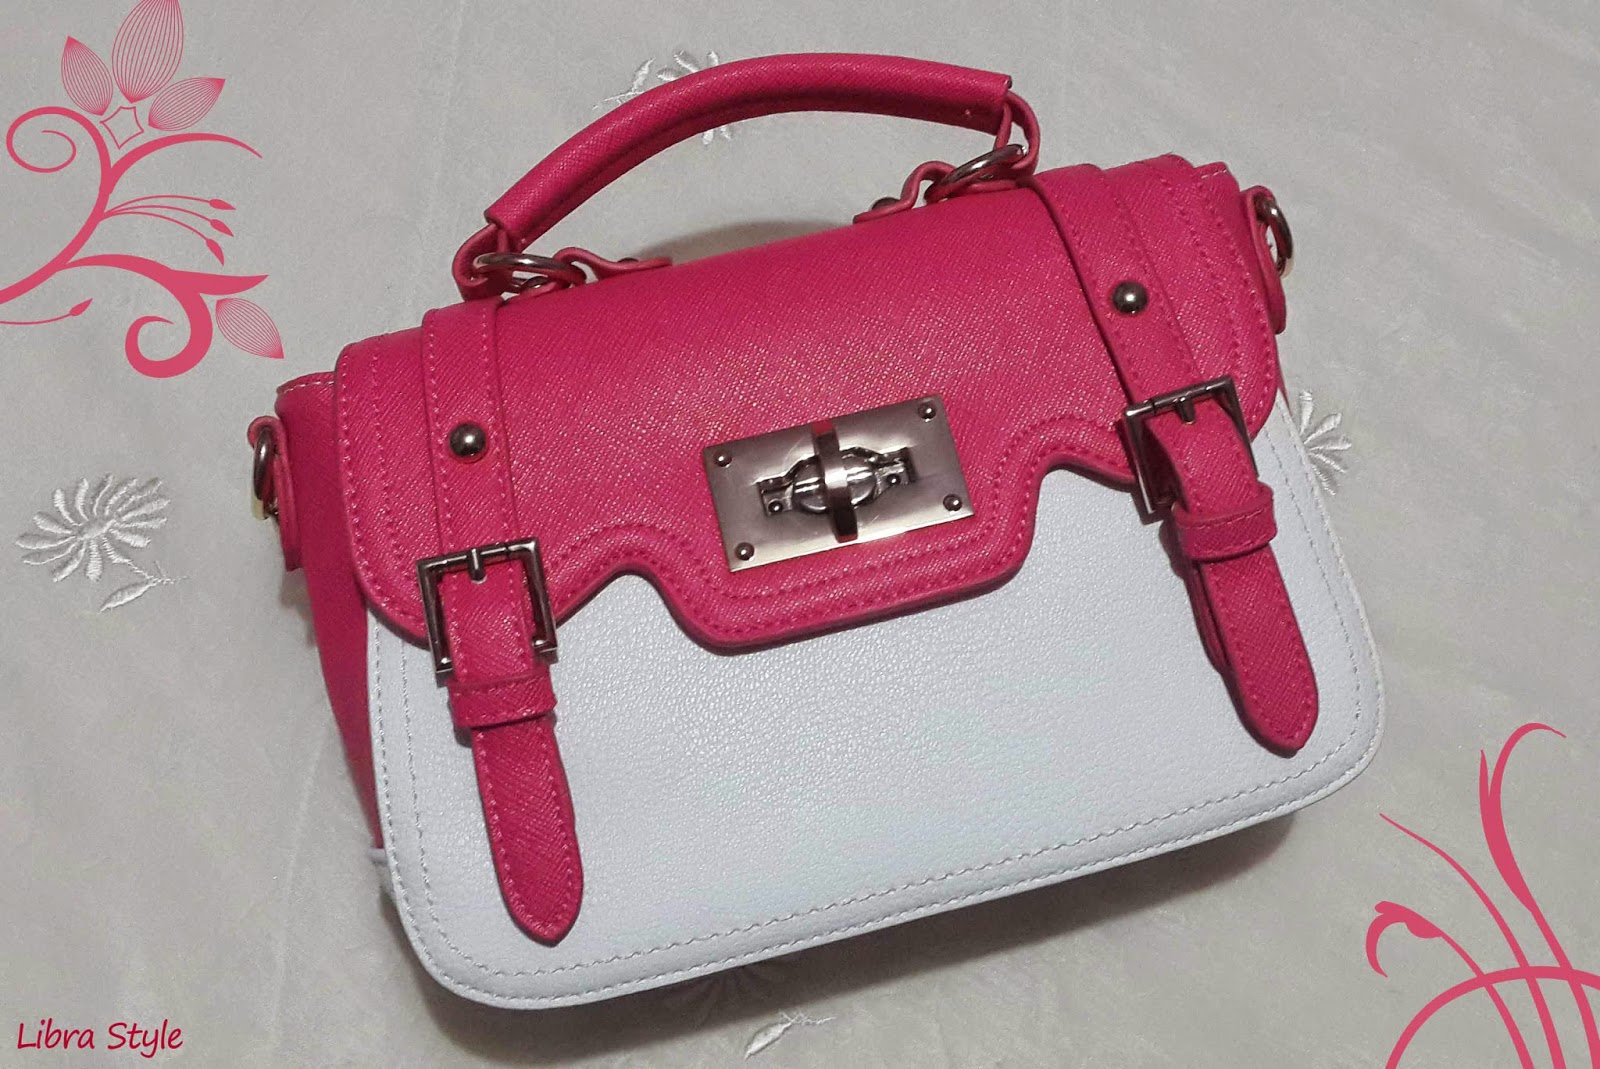 aurelia bag, forever new bag, woman bag, pink bag, oxford pink bag, oxford bag, pembe çanta, forever new çanta, forever new yeni sezon, forever new season, kadın çantası,